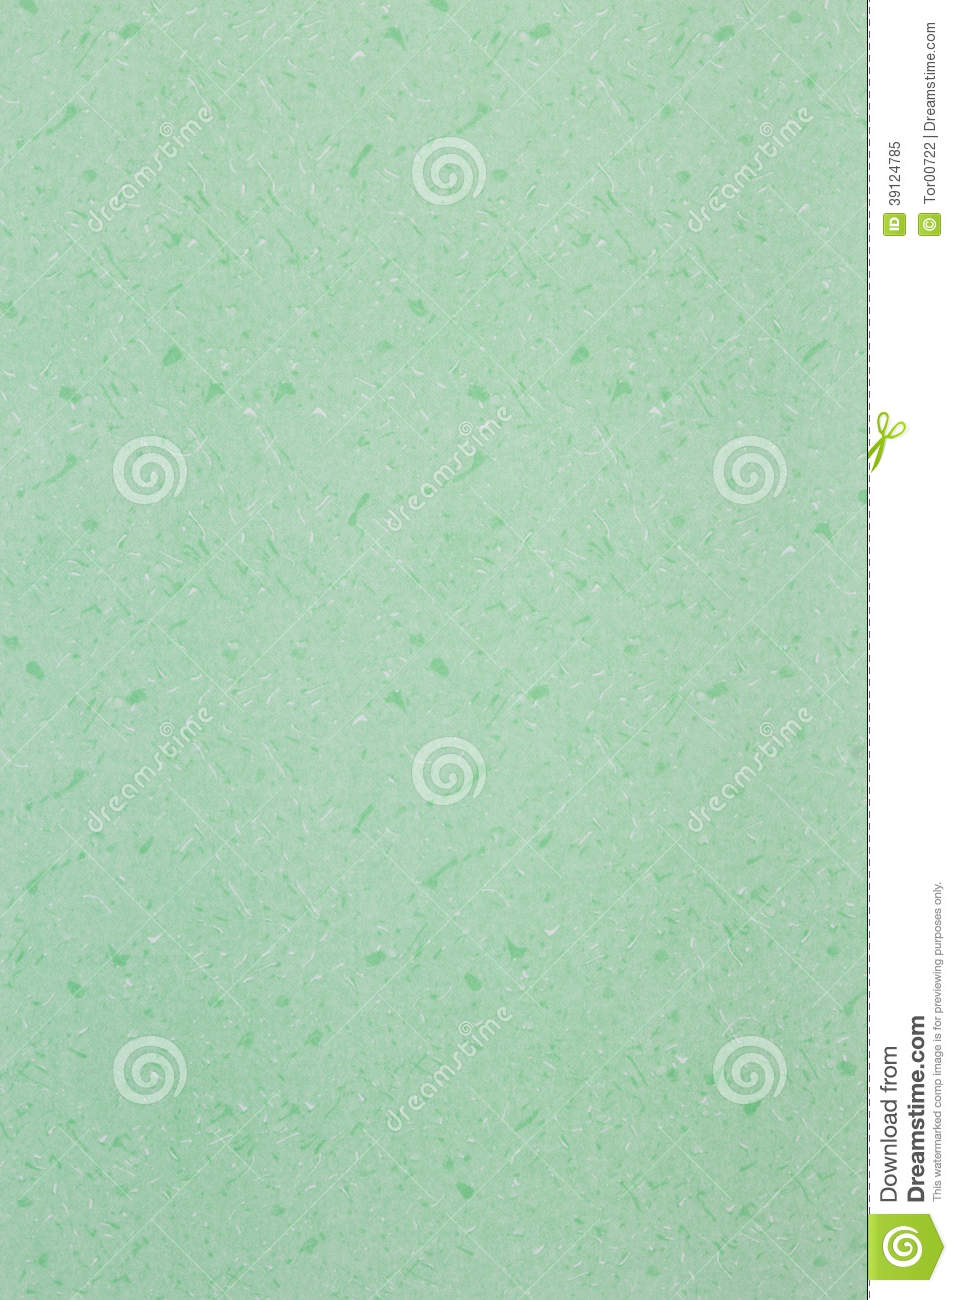 Texture, Background Of Green Color Paper Is Blank Page Stock Image ...